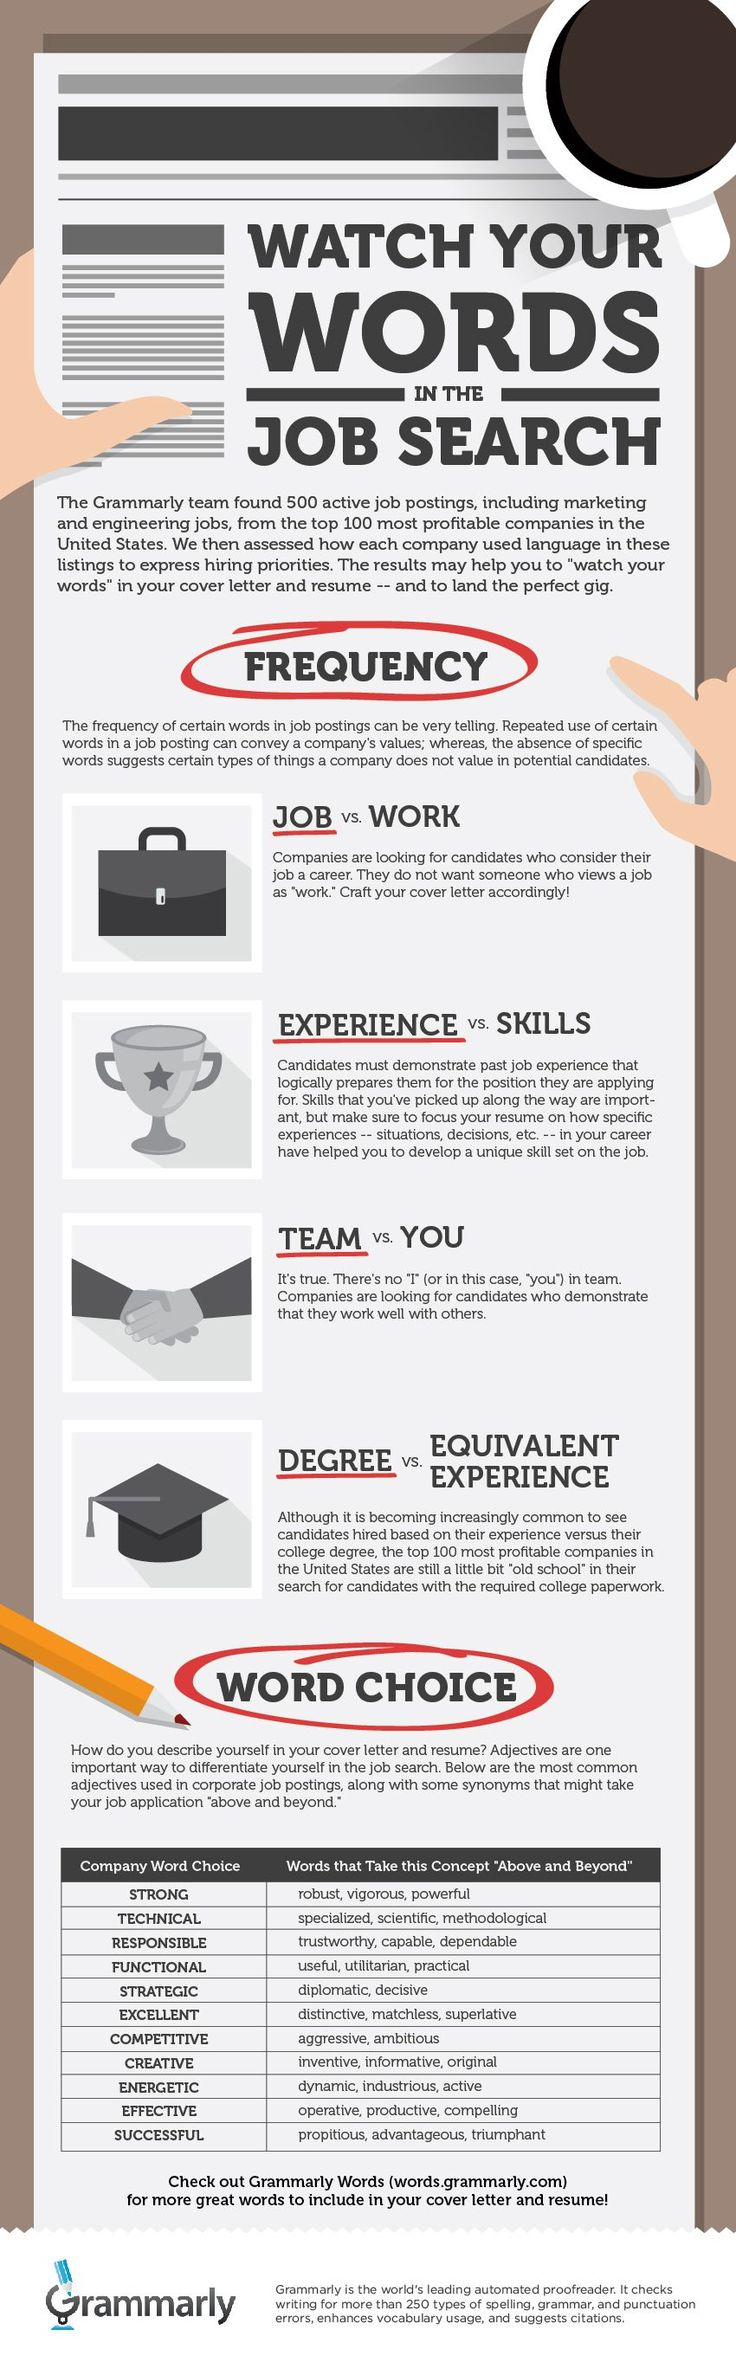 25 unique resume cover letters ideas on pinterest cover letter i know youll face pain suffering hard choices i love my cover letter tipsjob madrichimfo Images